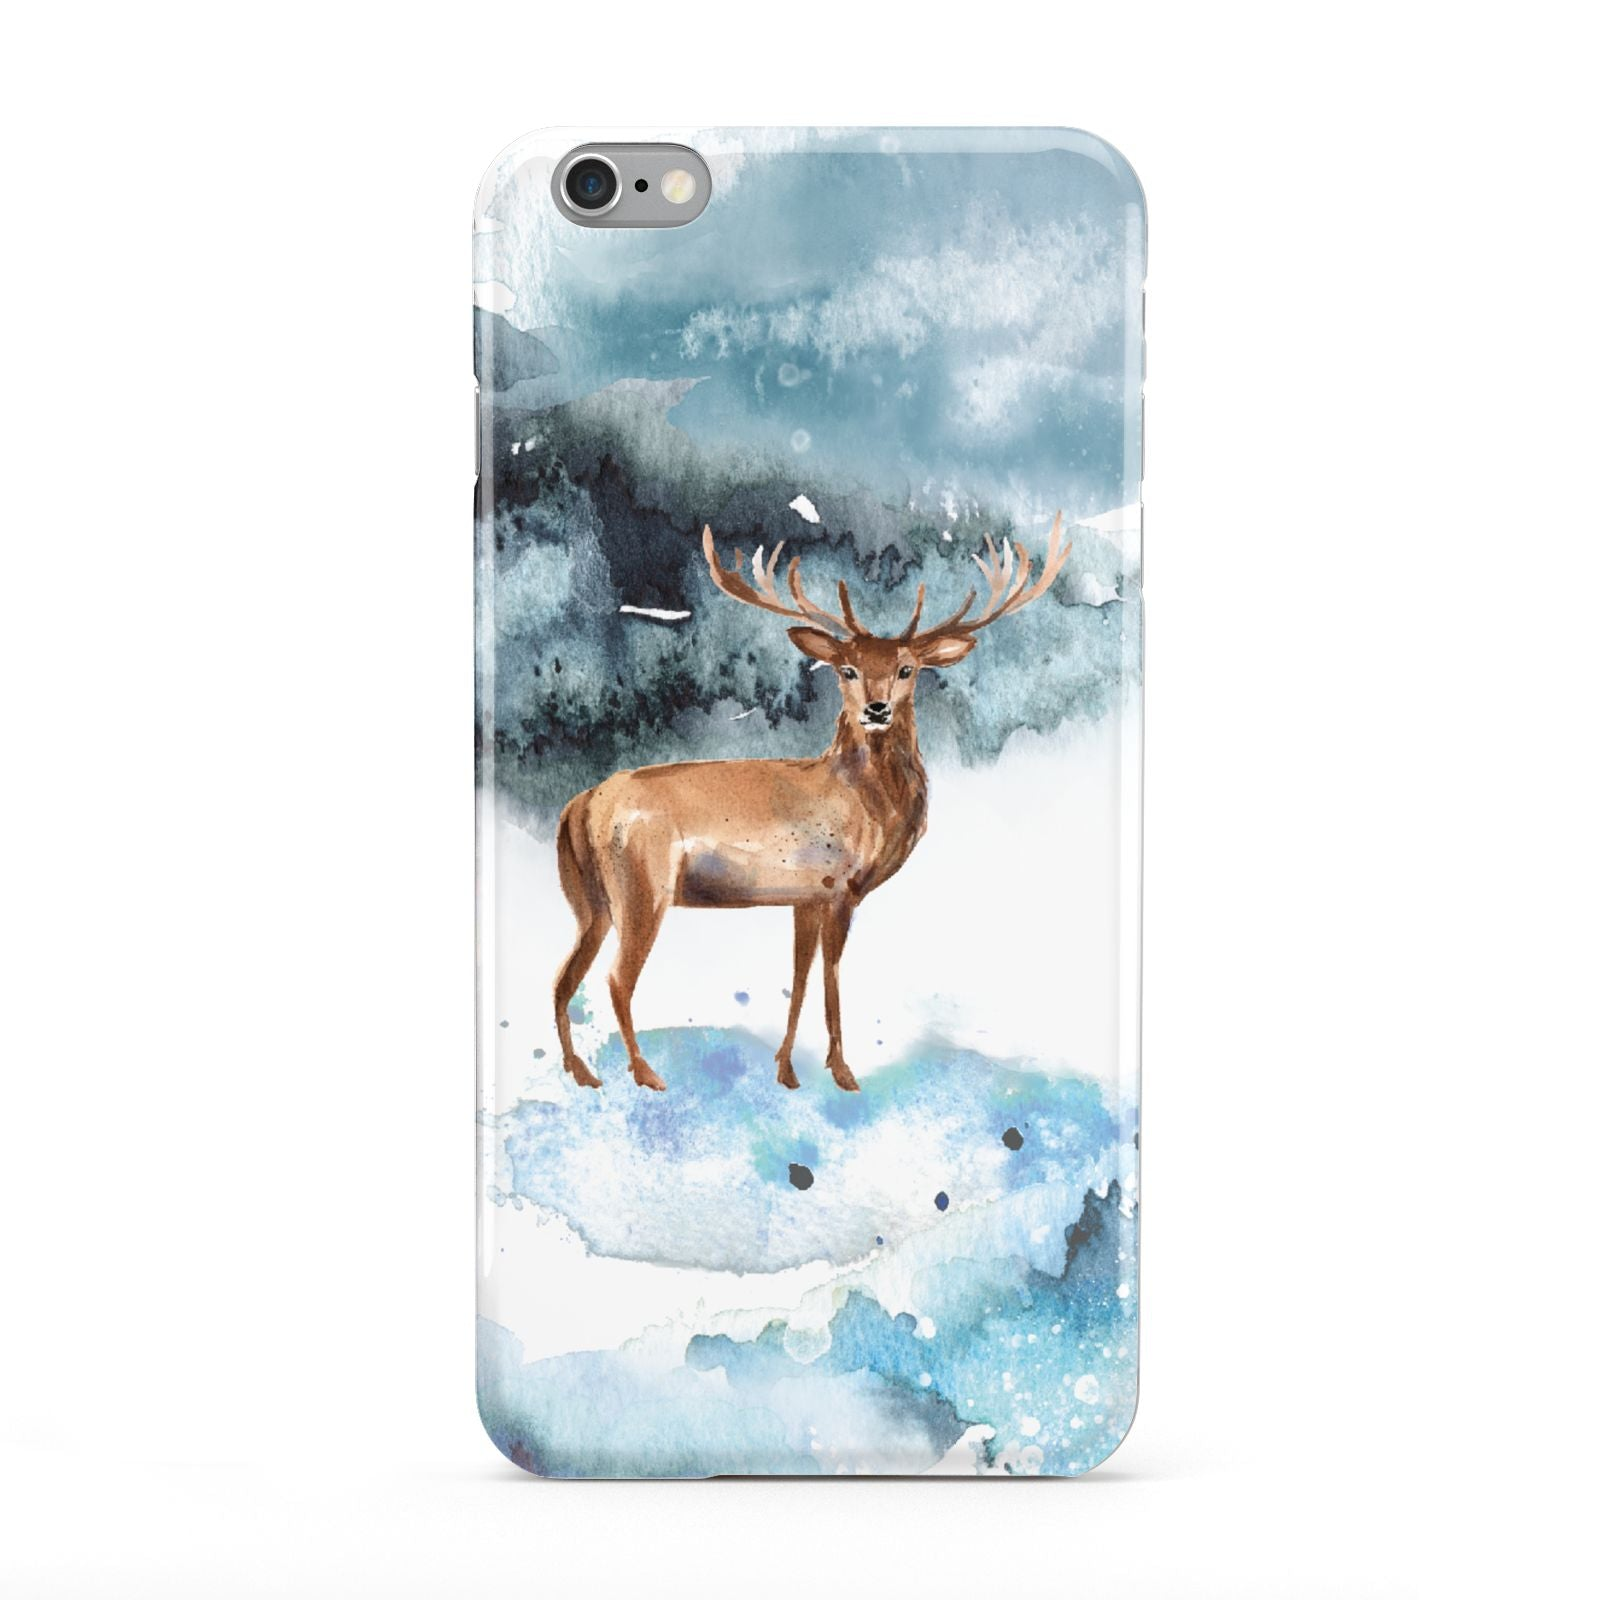 Christmas Winter Stag Apple iPhone 6 Plus Case